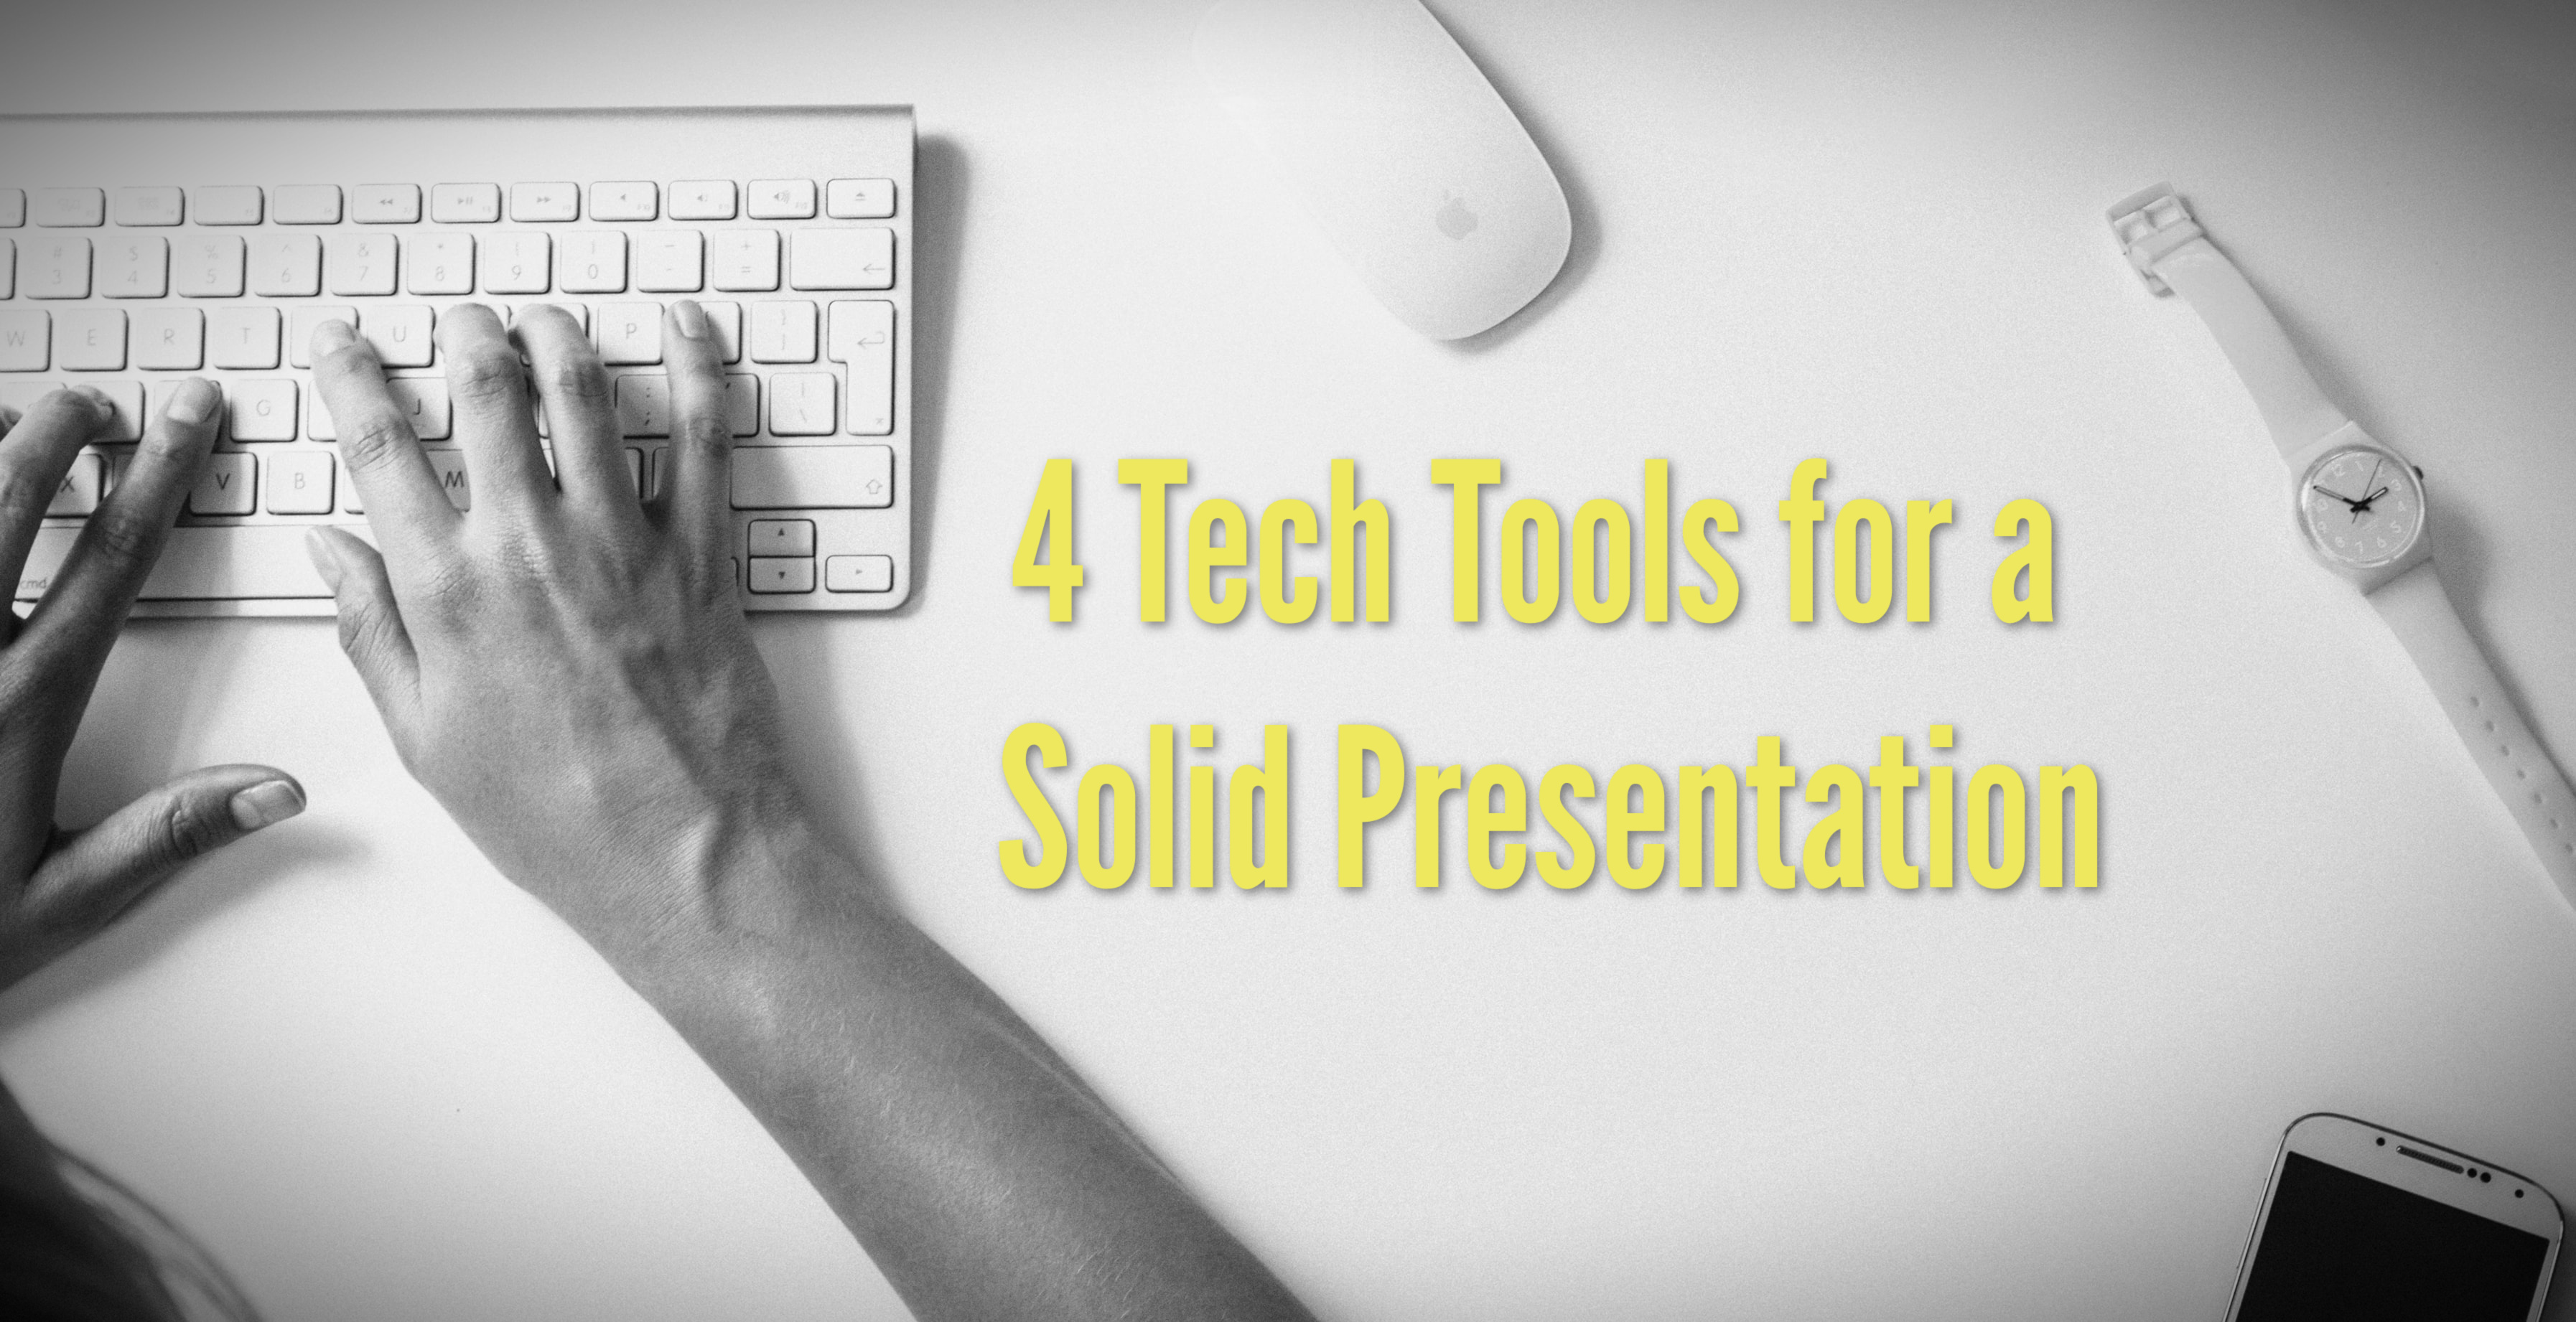 4 Tech Tools for a Solid Presentation